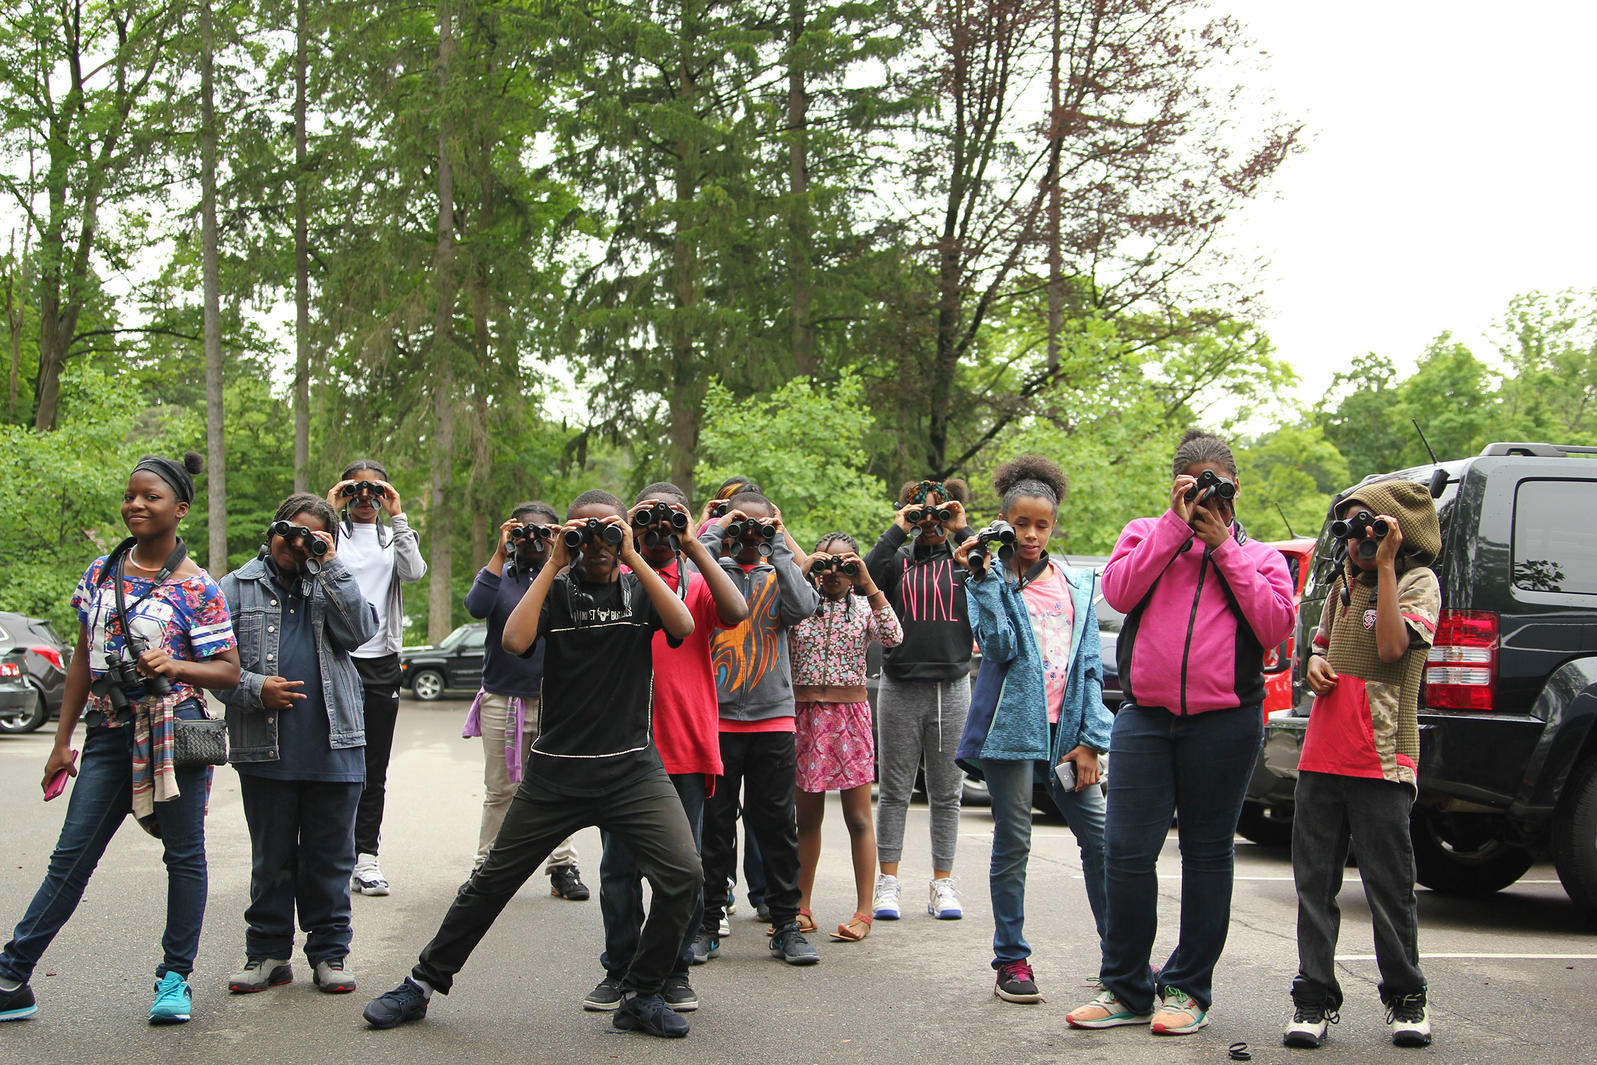 Students from Burns Middle School prepare to go on a Wild Indigo bird walk guided by Detroit Audubon staff at Cranbrook House and Gardens. Eileen Solange Rodriguez/Audubon